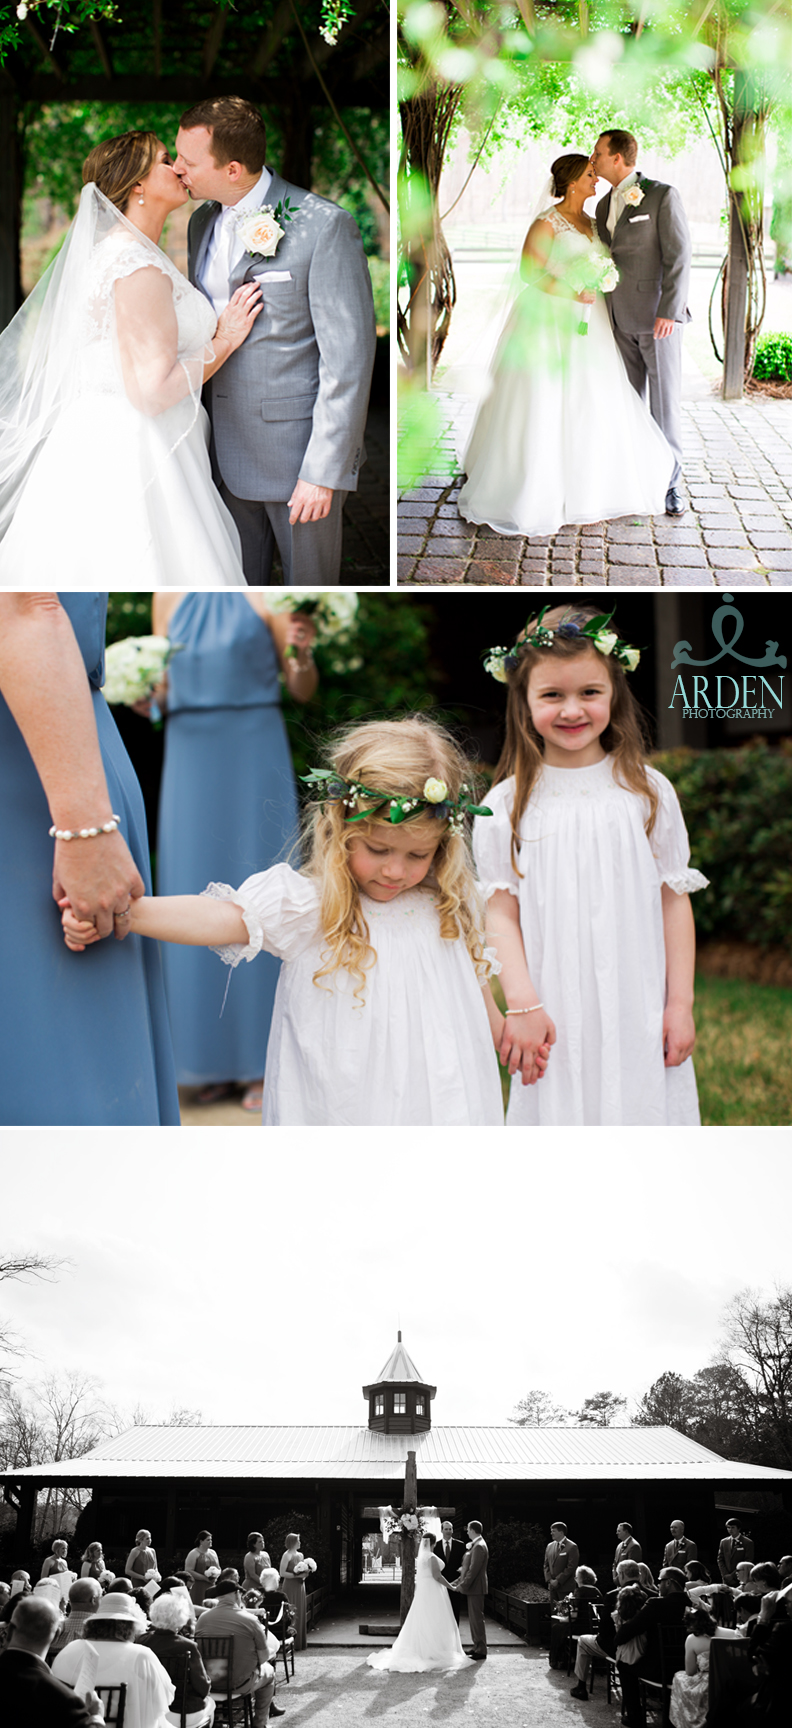 Lots of love for all during the traditional vows and who doesn't love a precious flower girl photo?